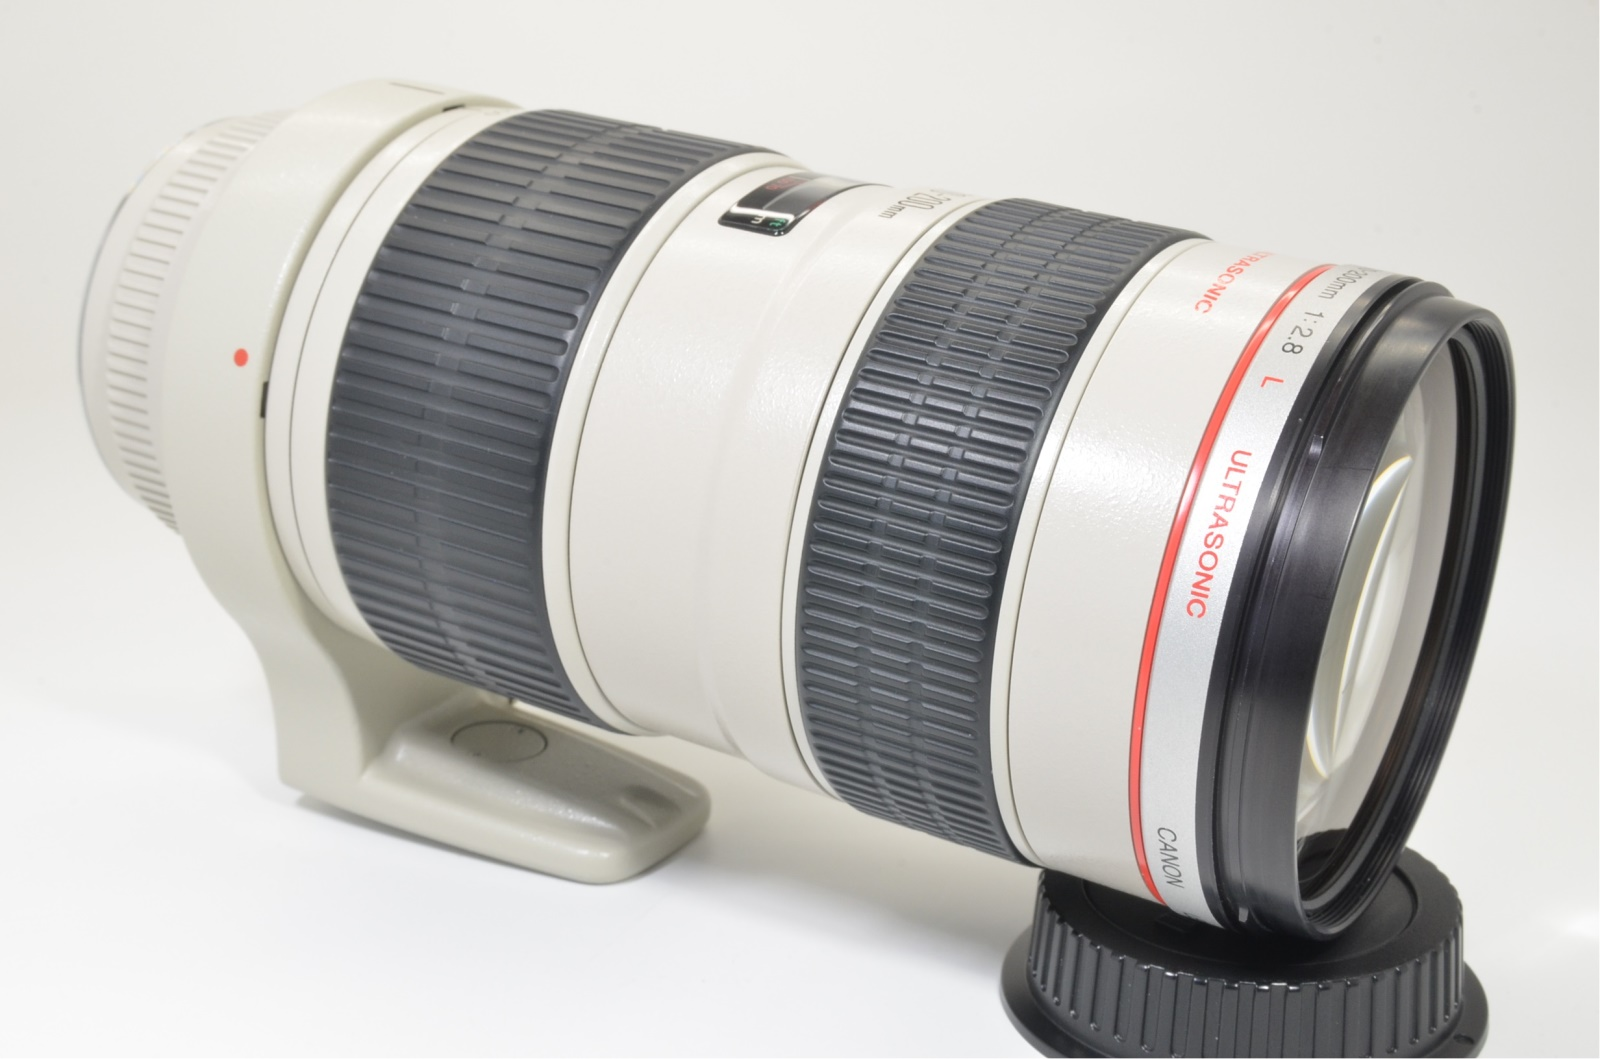 canon ef 70-200mm f/2.8 l usm ultrasonic lens near mint shooting tested